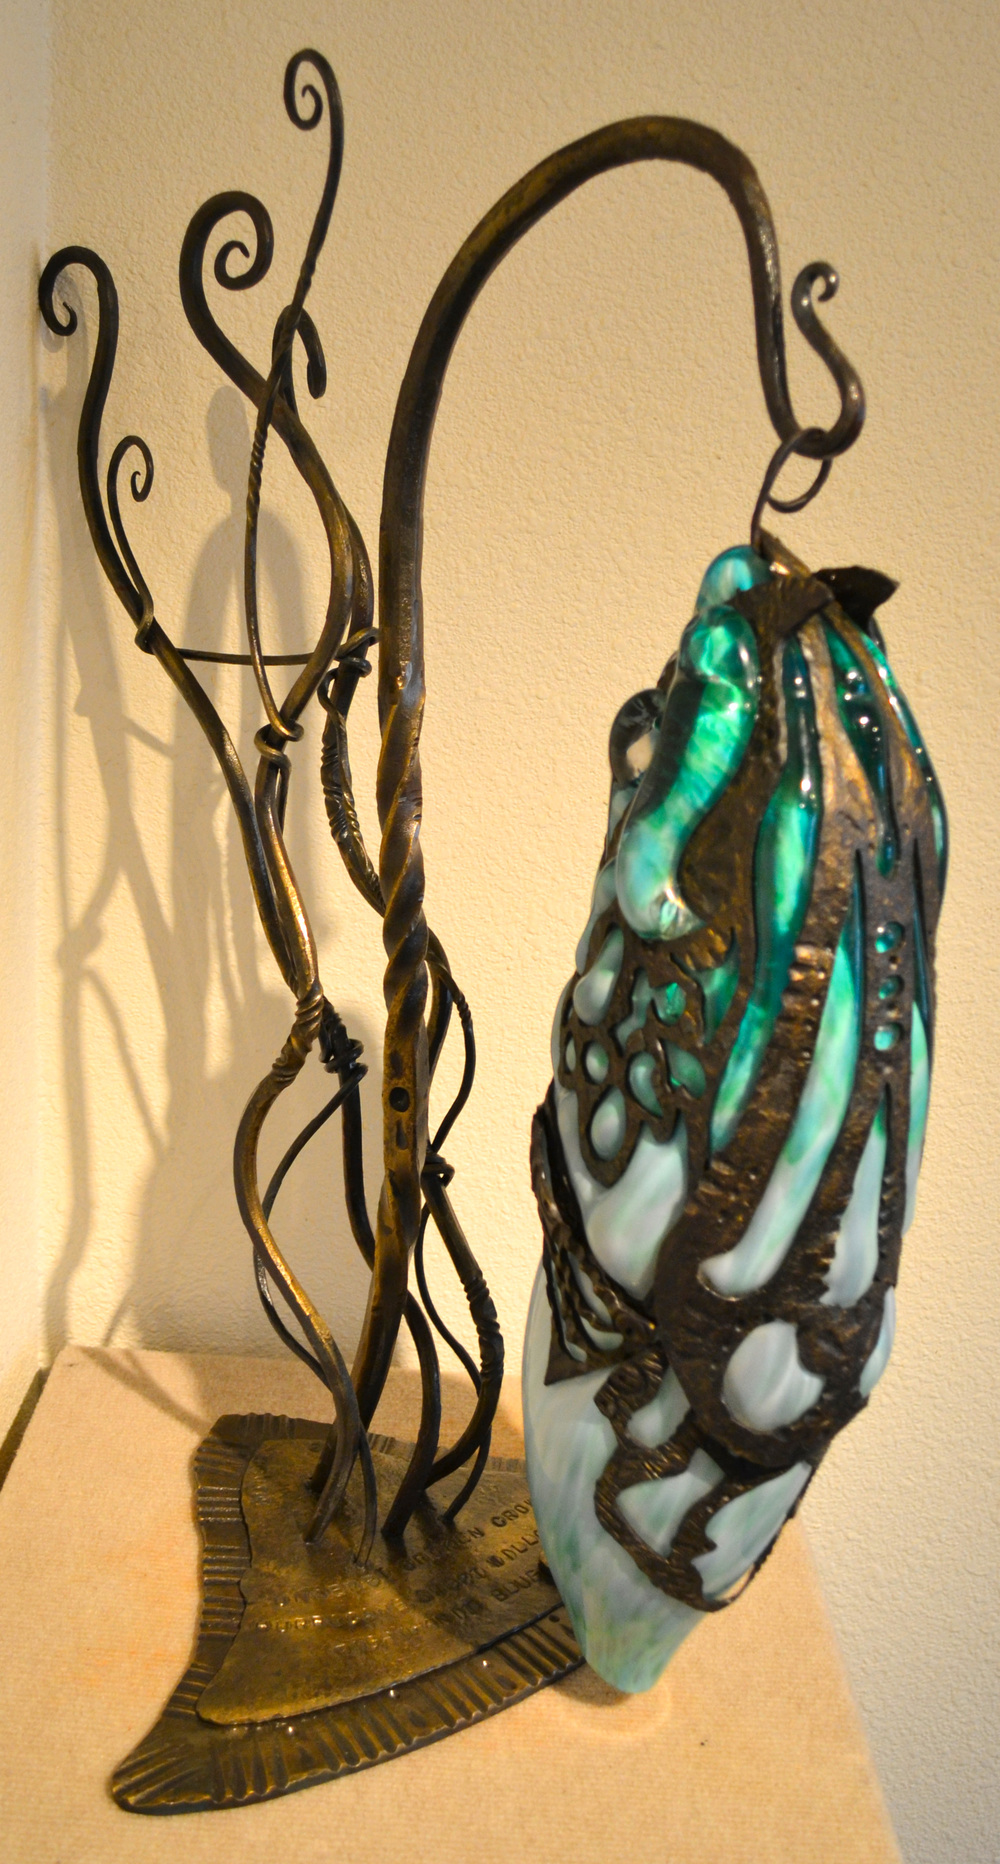 Constricted Glass Sculpture